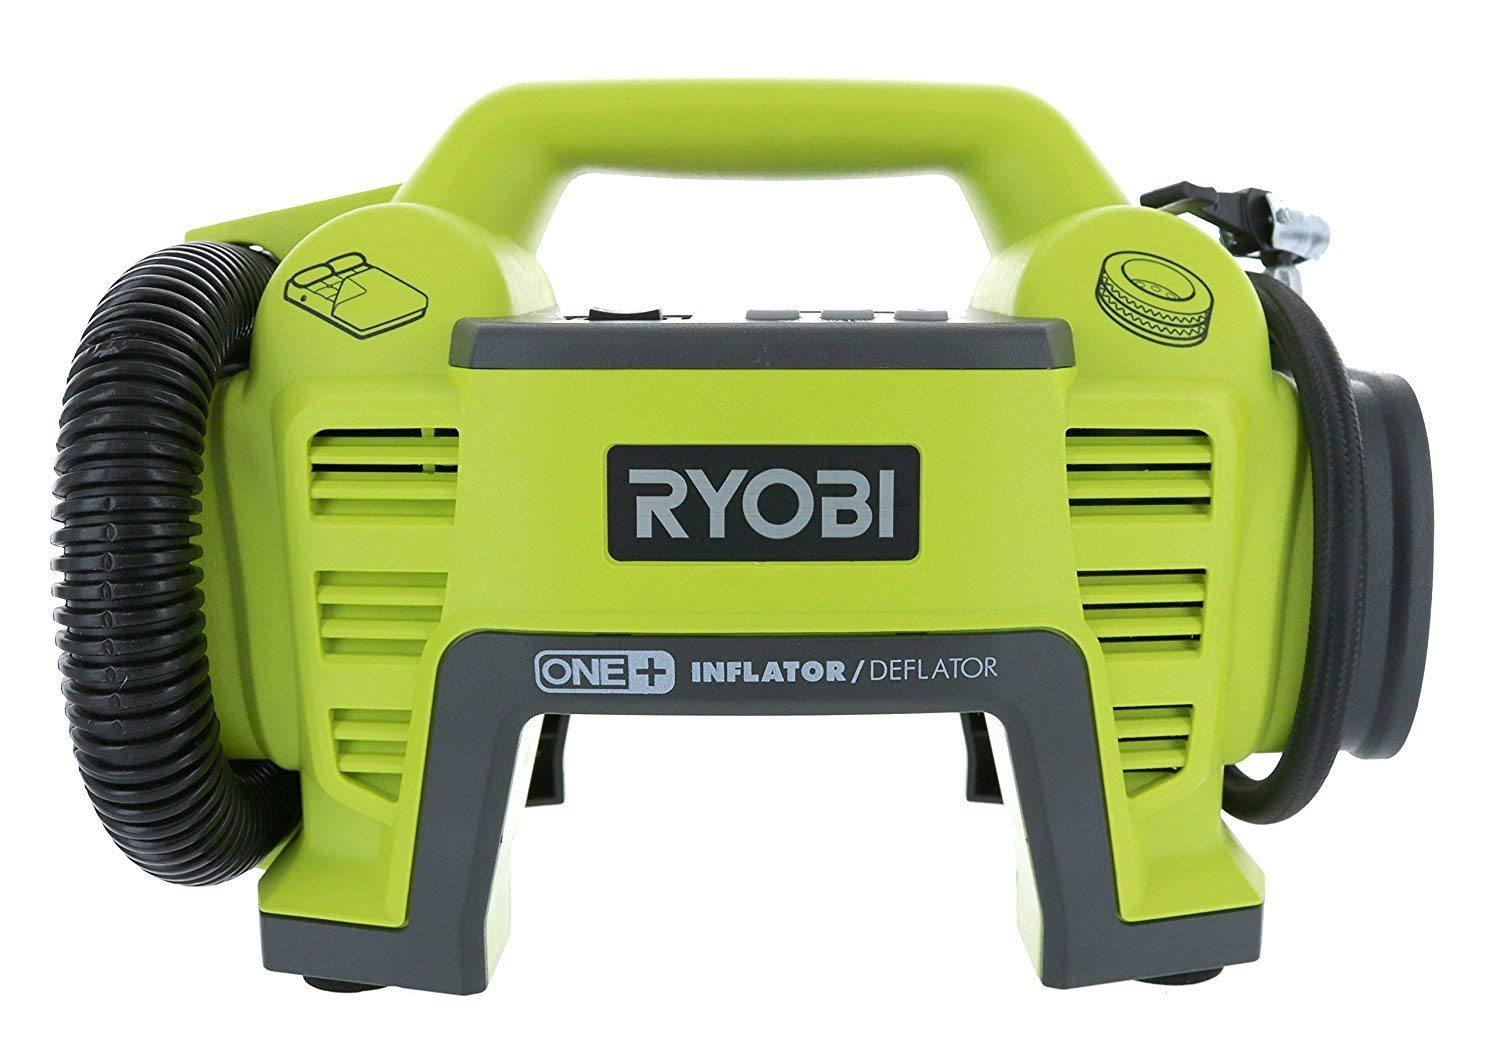 Ryobi P731 One+ 18v Dual Function Power Inflator/Deflator Cordless Air Compressor Kit w/ Adapters (Battery Not Included, Tool Only) (Renewed) by Ryobi